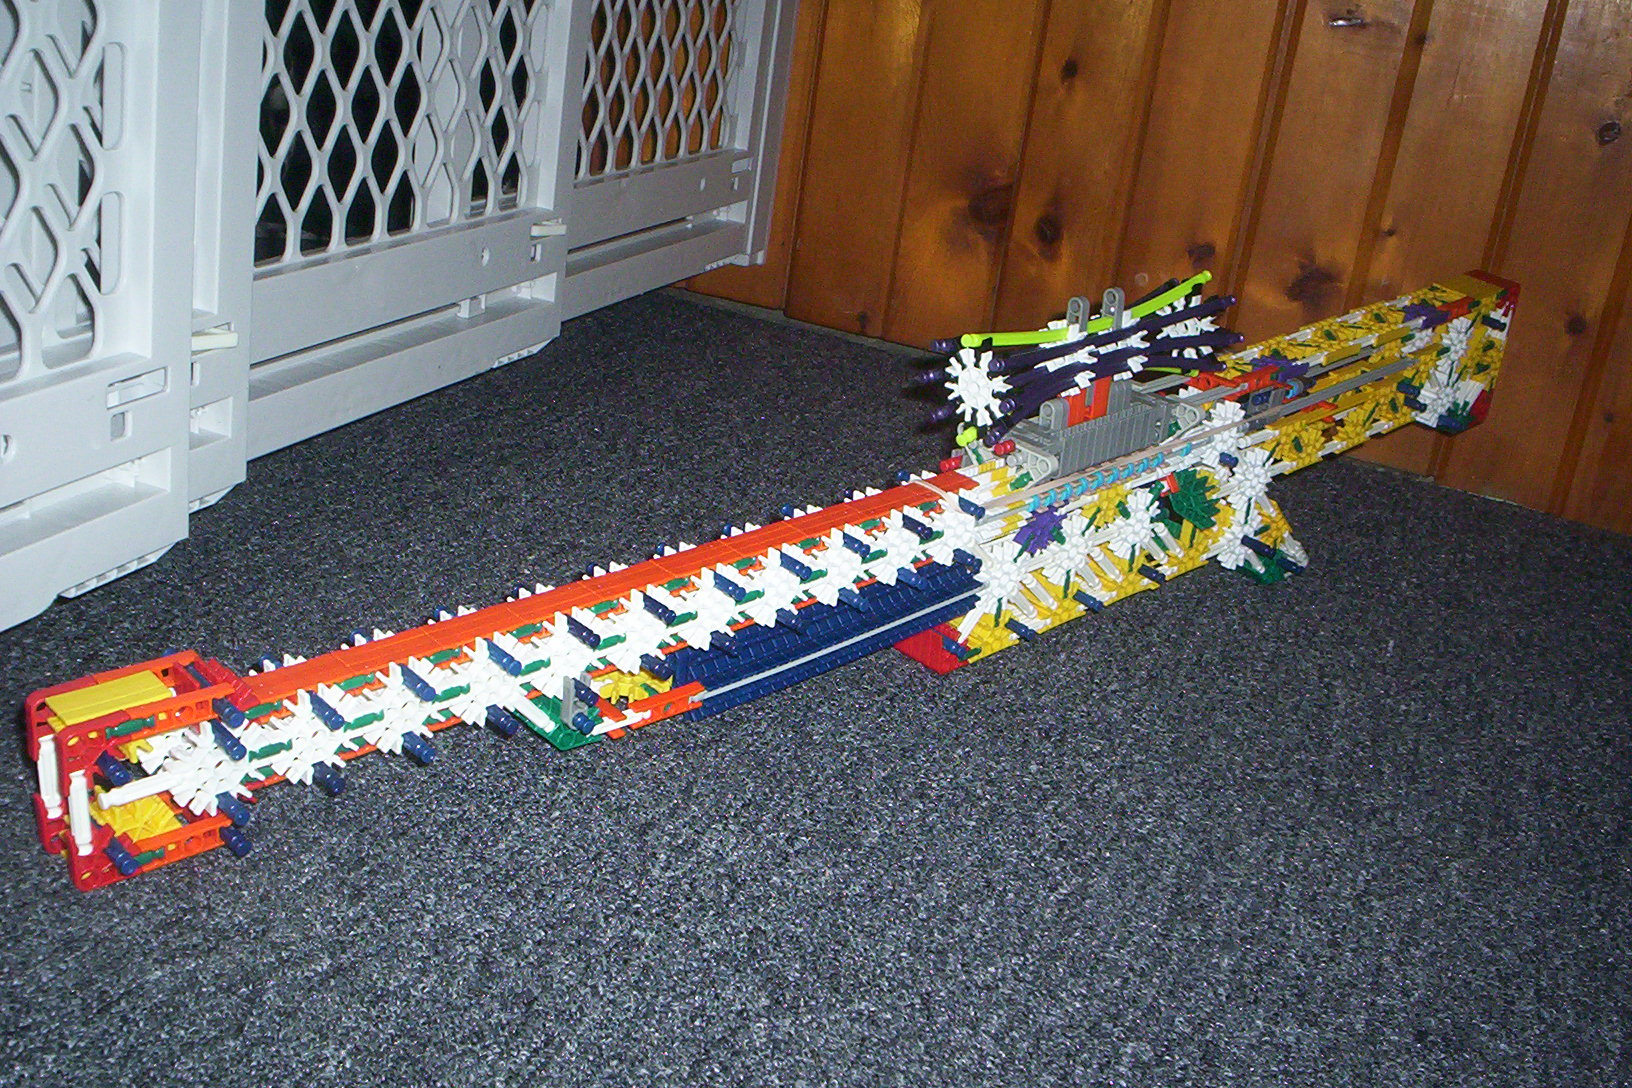 Picture of Mepain's Loser Rifle